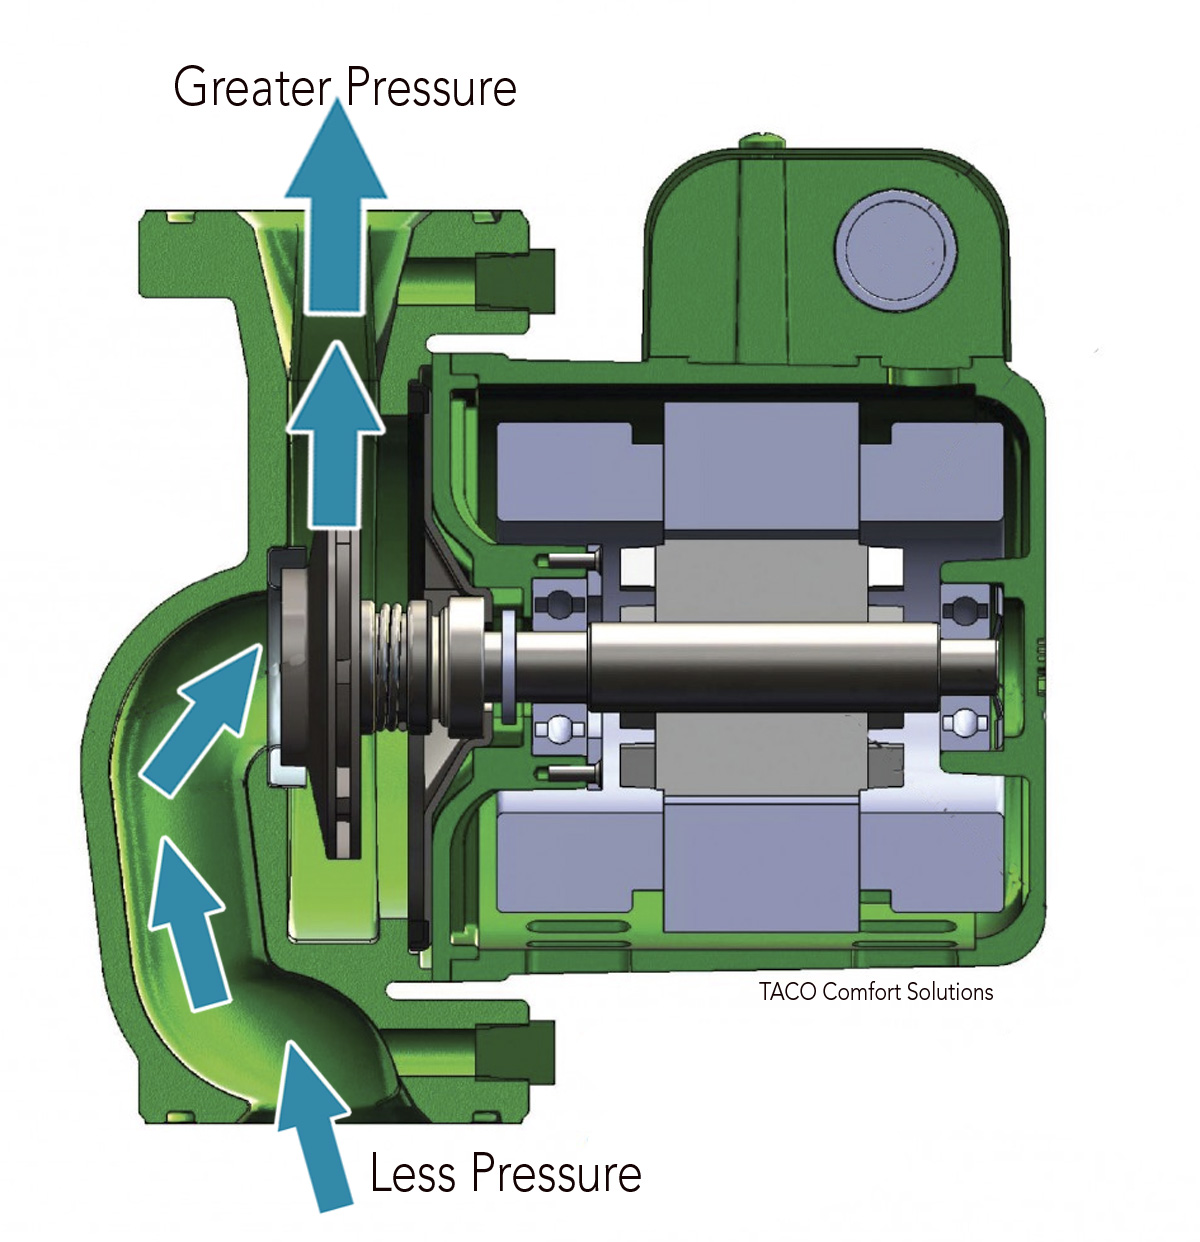 The direction water flows is determined by the higher pressure found on the discharge side of the circulator.